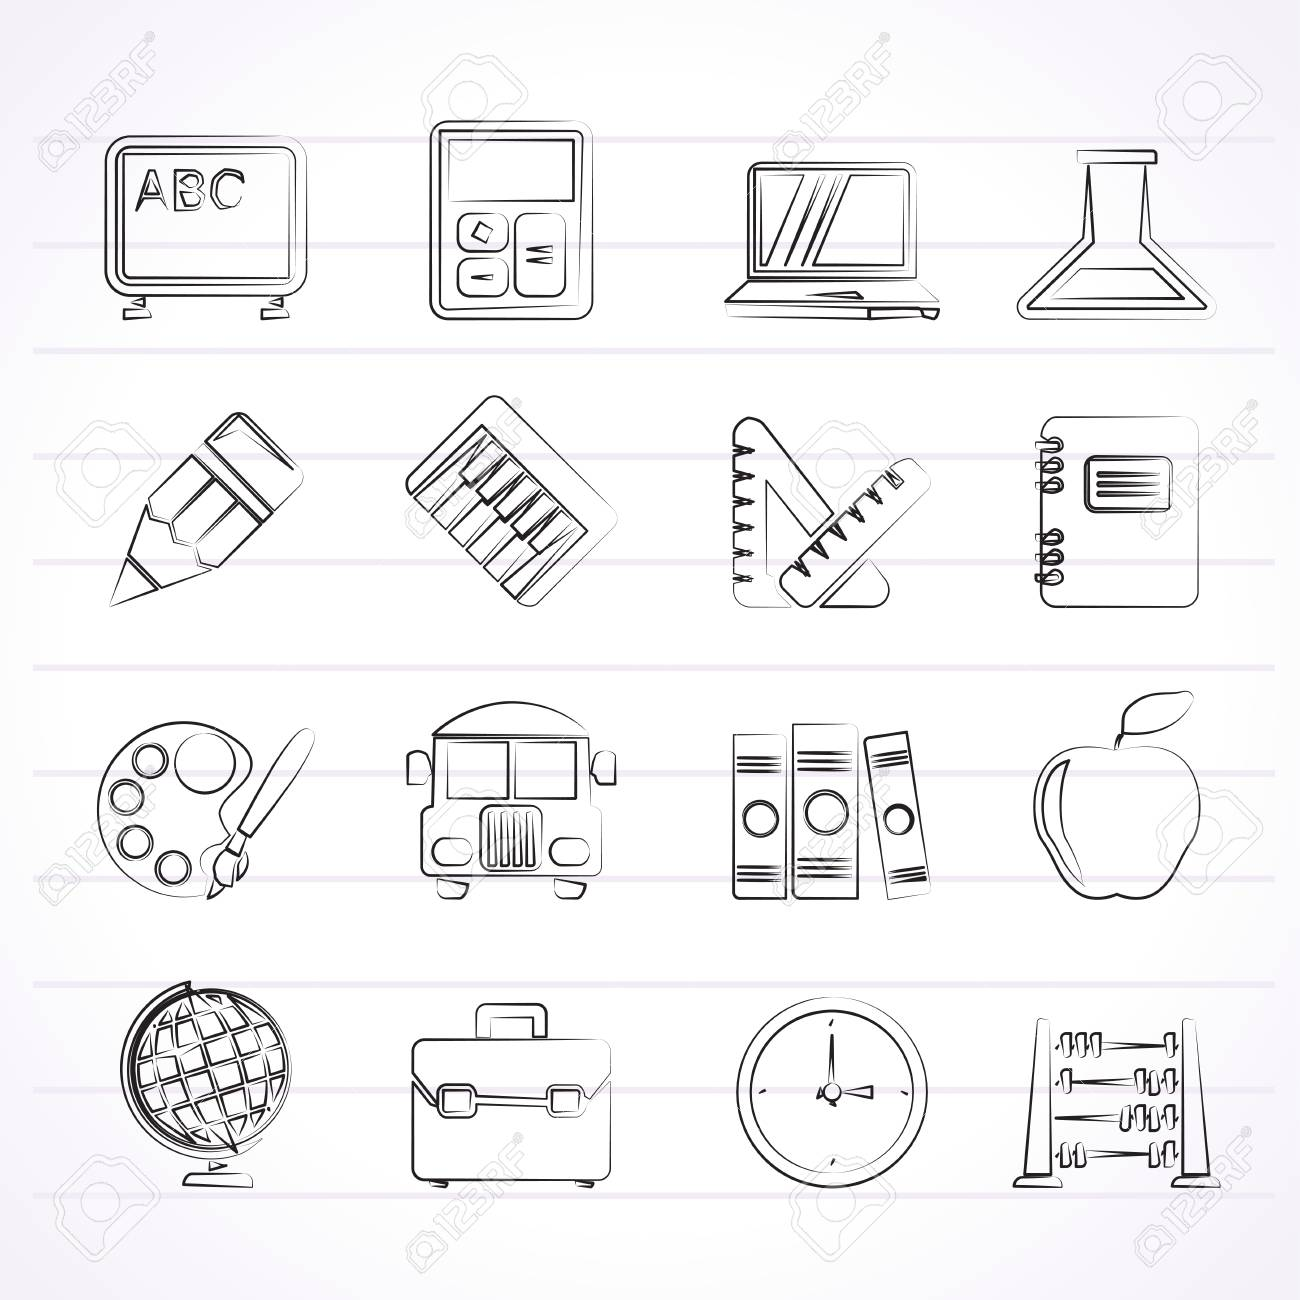 School and education icons - vector icon set Stock Vector - 24914642